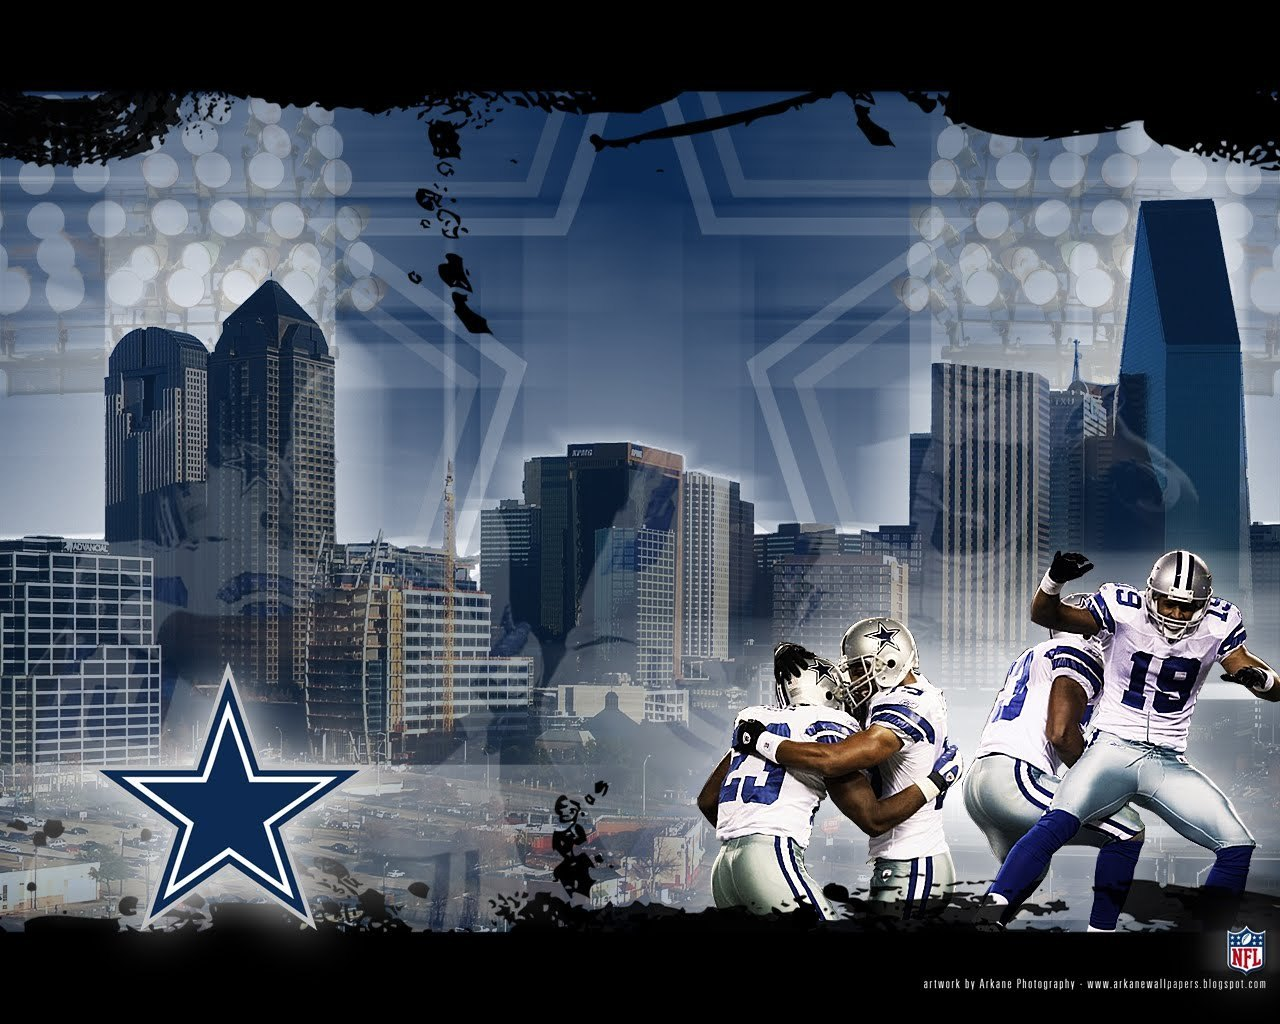 Cool Dallas Cowboys wallpaper for computers : Evolutionext